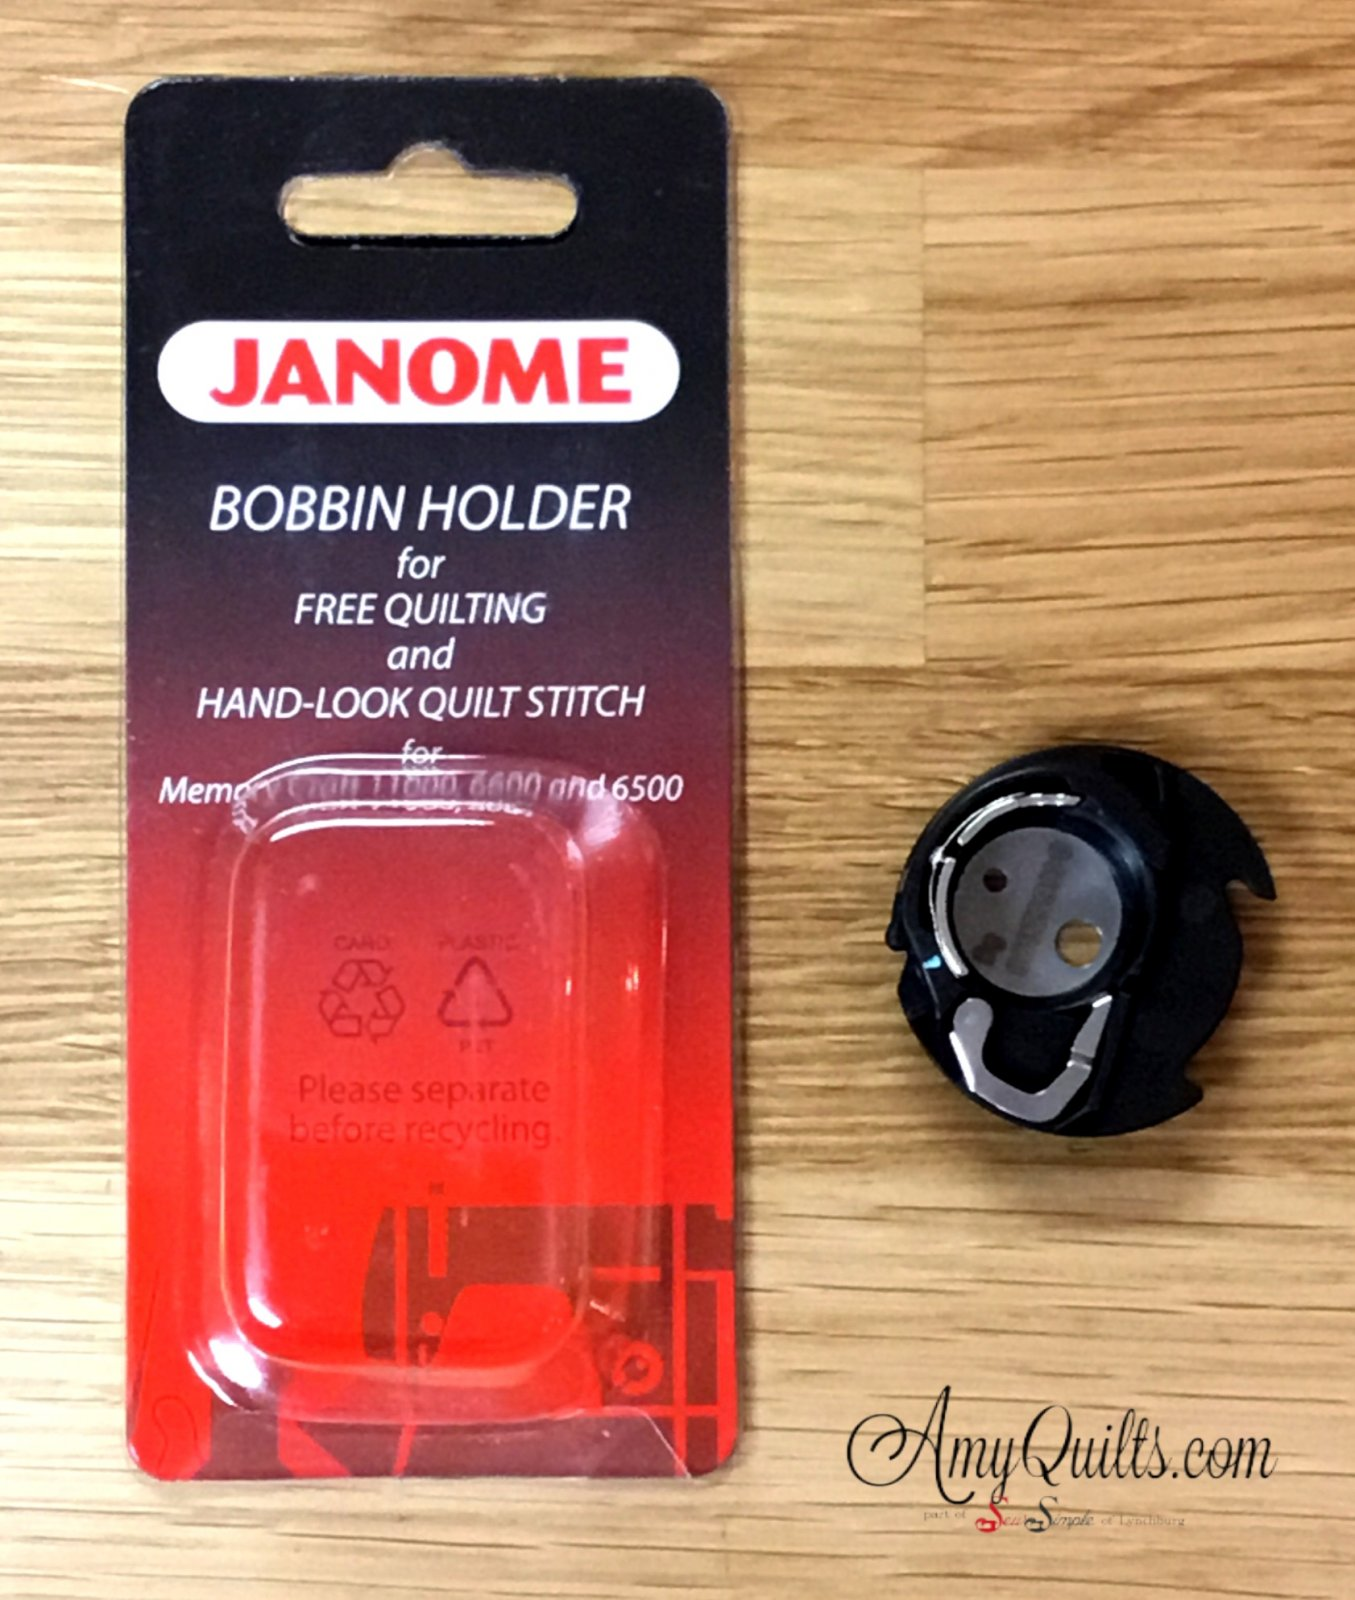 Janome Bobbin Holder for Free Quilting and Hand-look Quilt Stitch  (Blue Dot Bobbin Case)